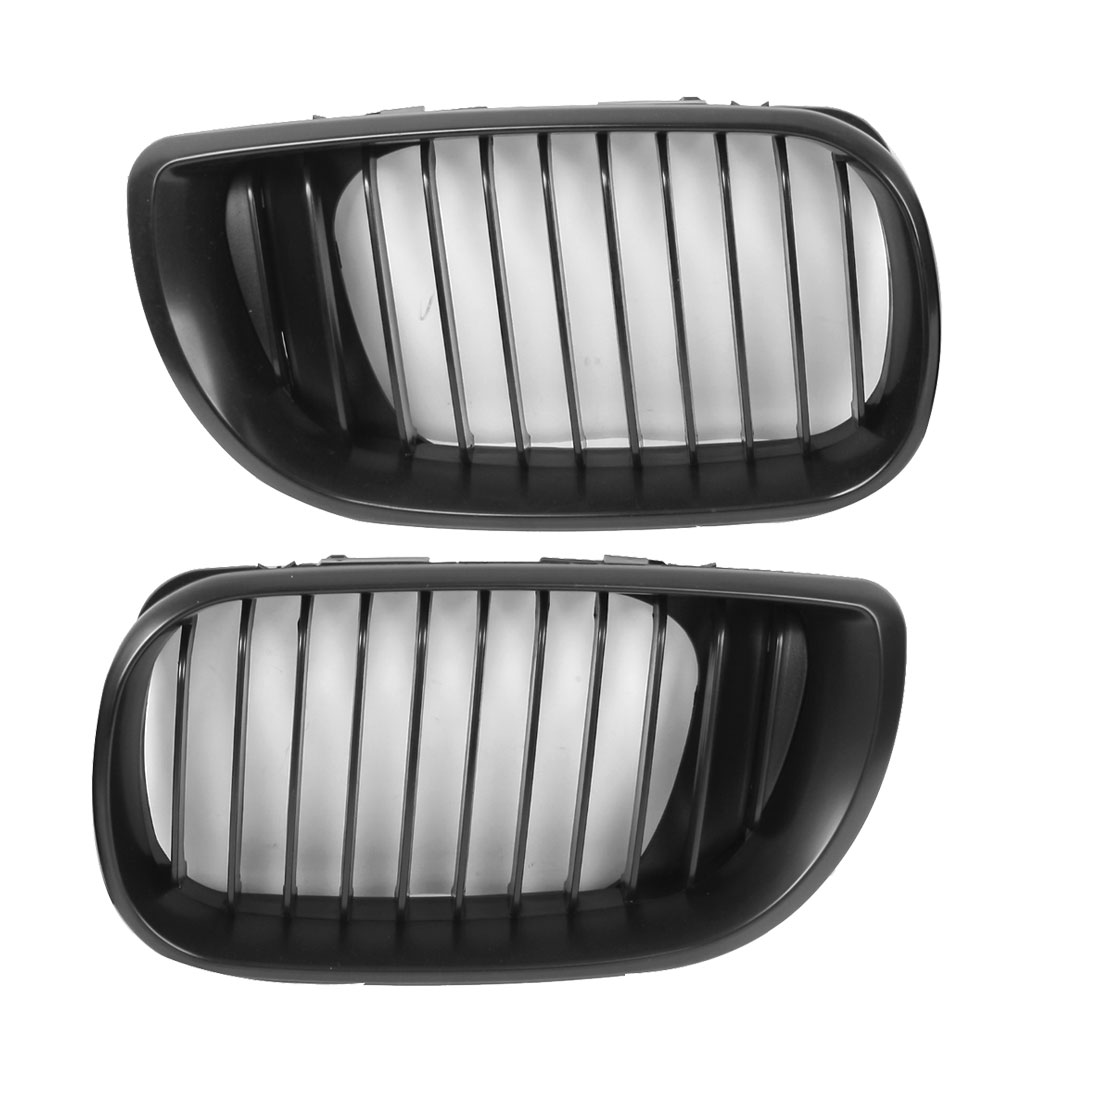 2 Pcs Front Bumper Right Left Fog Light Grill Covers Kidney Grille for BMW E46